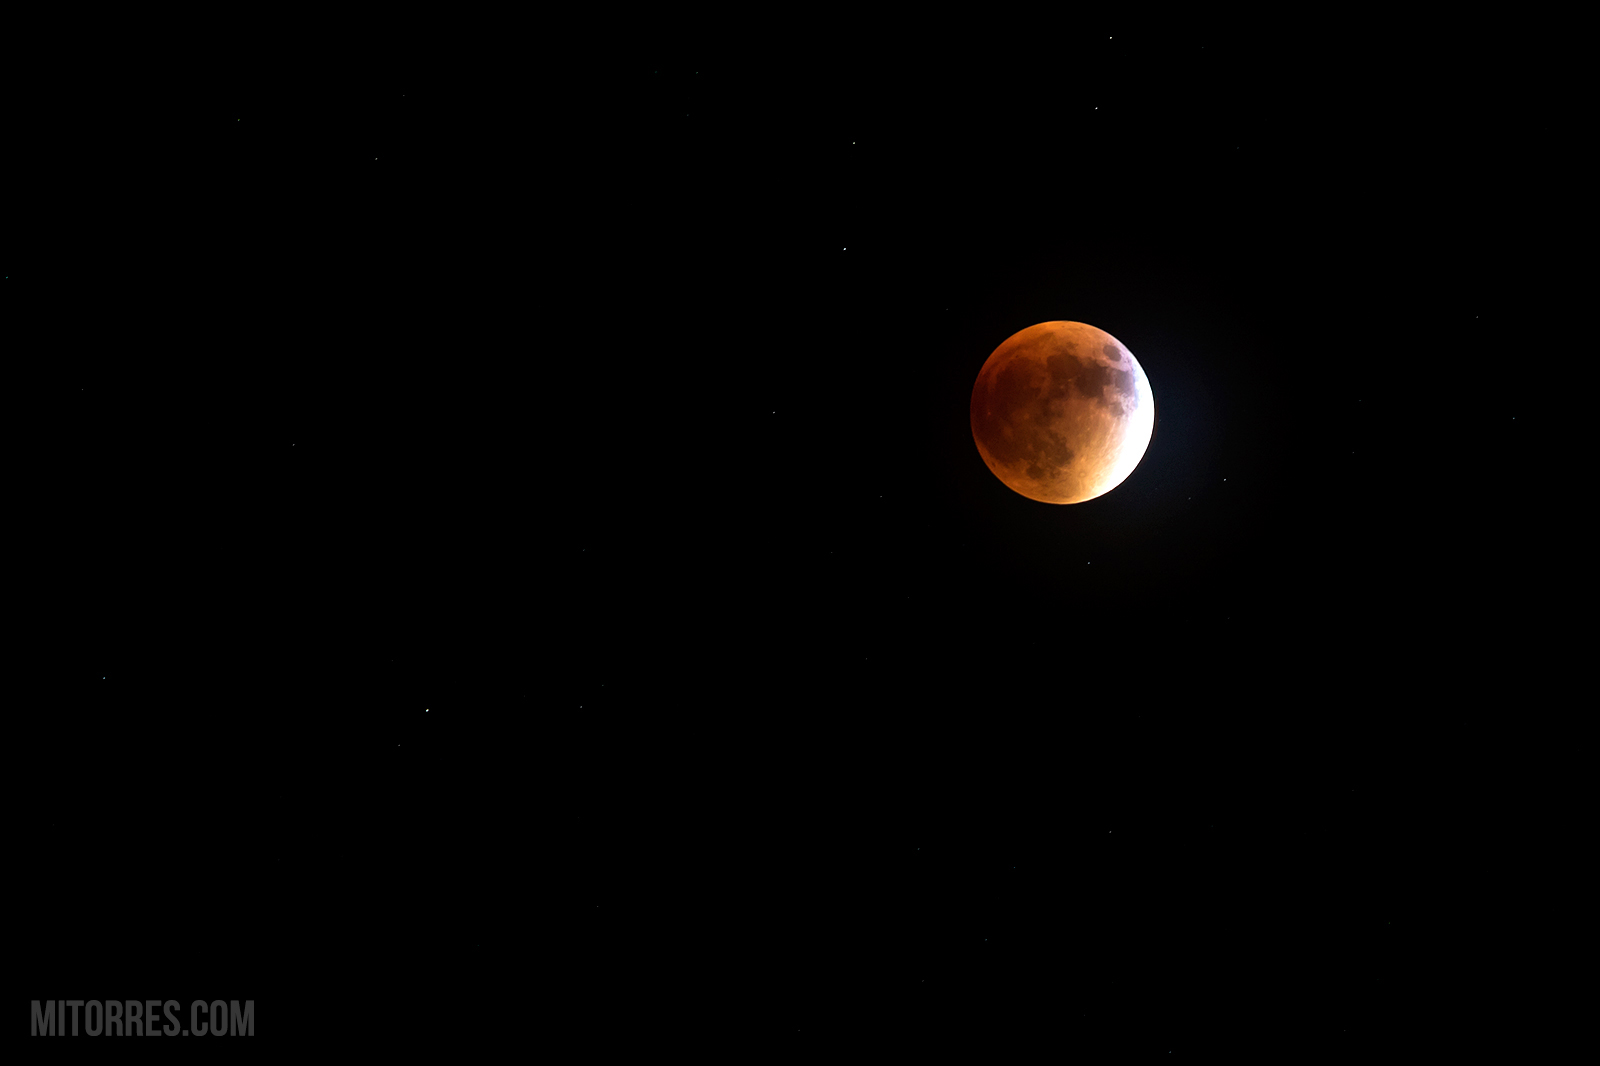 The Super Blood Moon over Florida, USA. September 27, 2015 @ 21:09 EDT. Photo: Marlon Torres